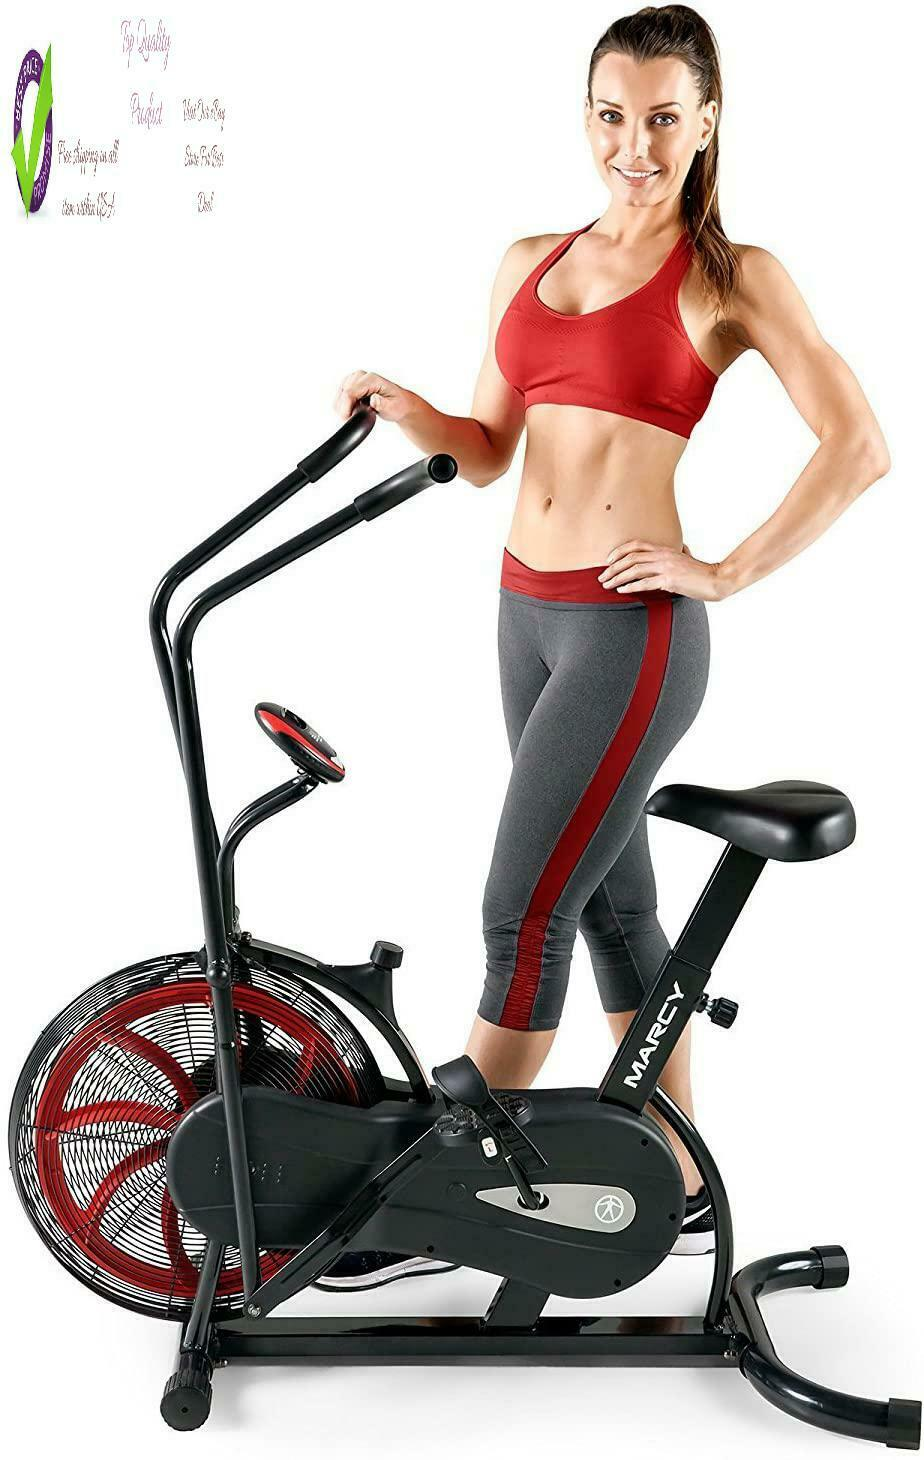 Marcy Fan Exercise Bike With Air Resistance System –  And Black – Ns-1000 air bike black exercise fan marcy resistance system with